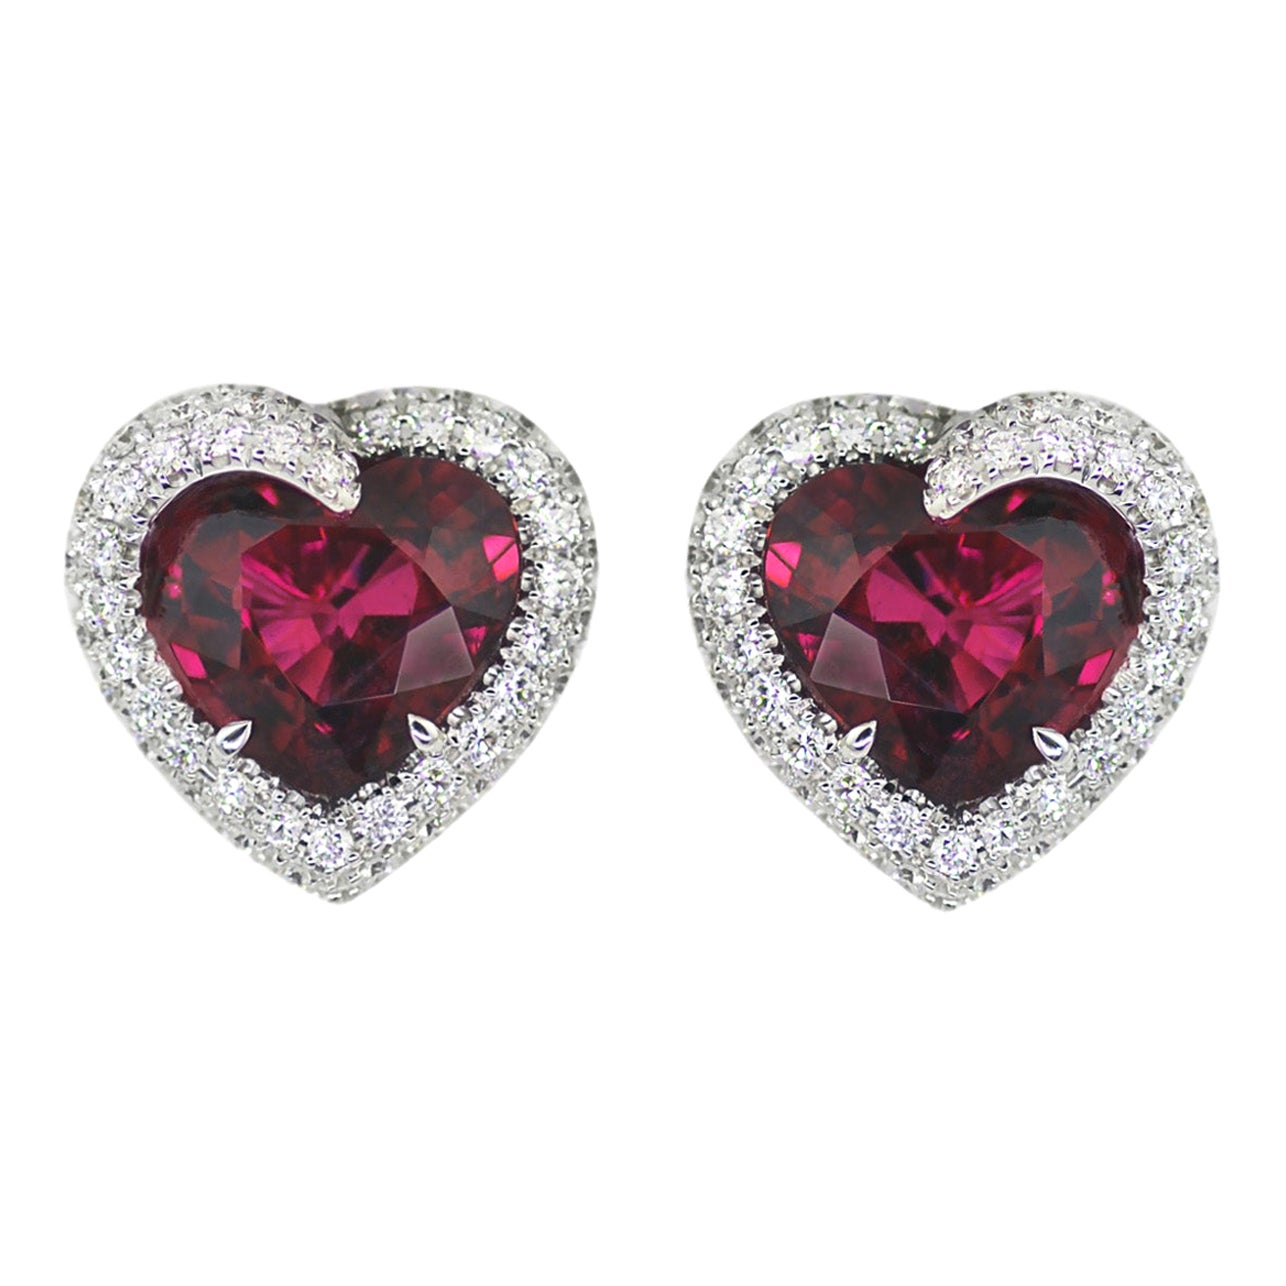 Diamond Heart Rubellite Tourmaline 18 KT White Gold Earrings Made in Italy